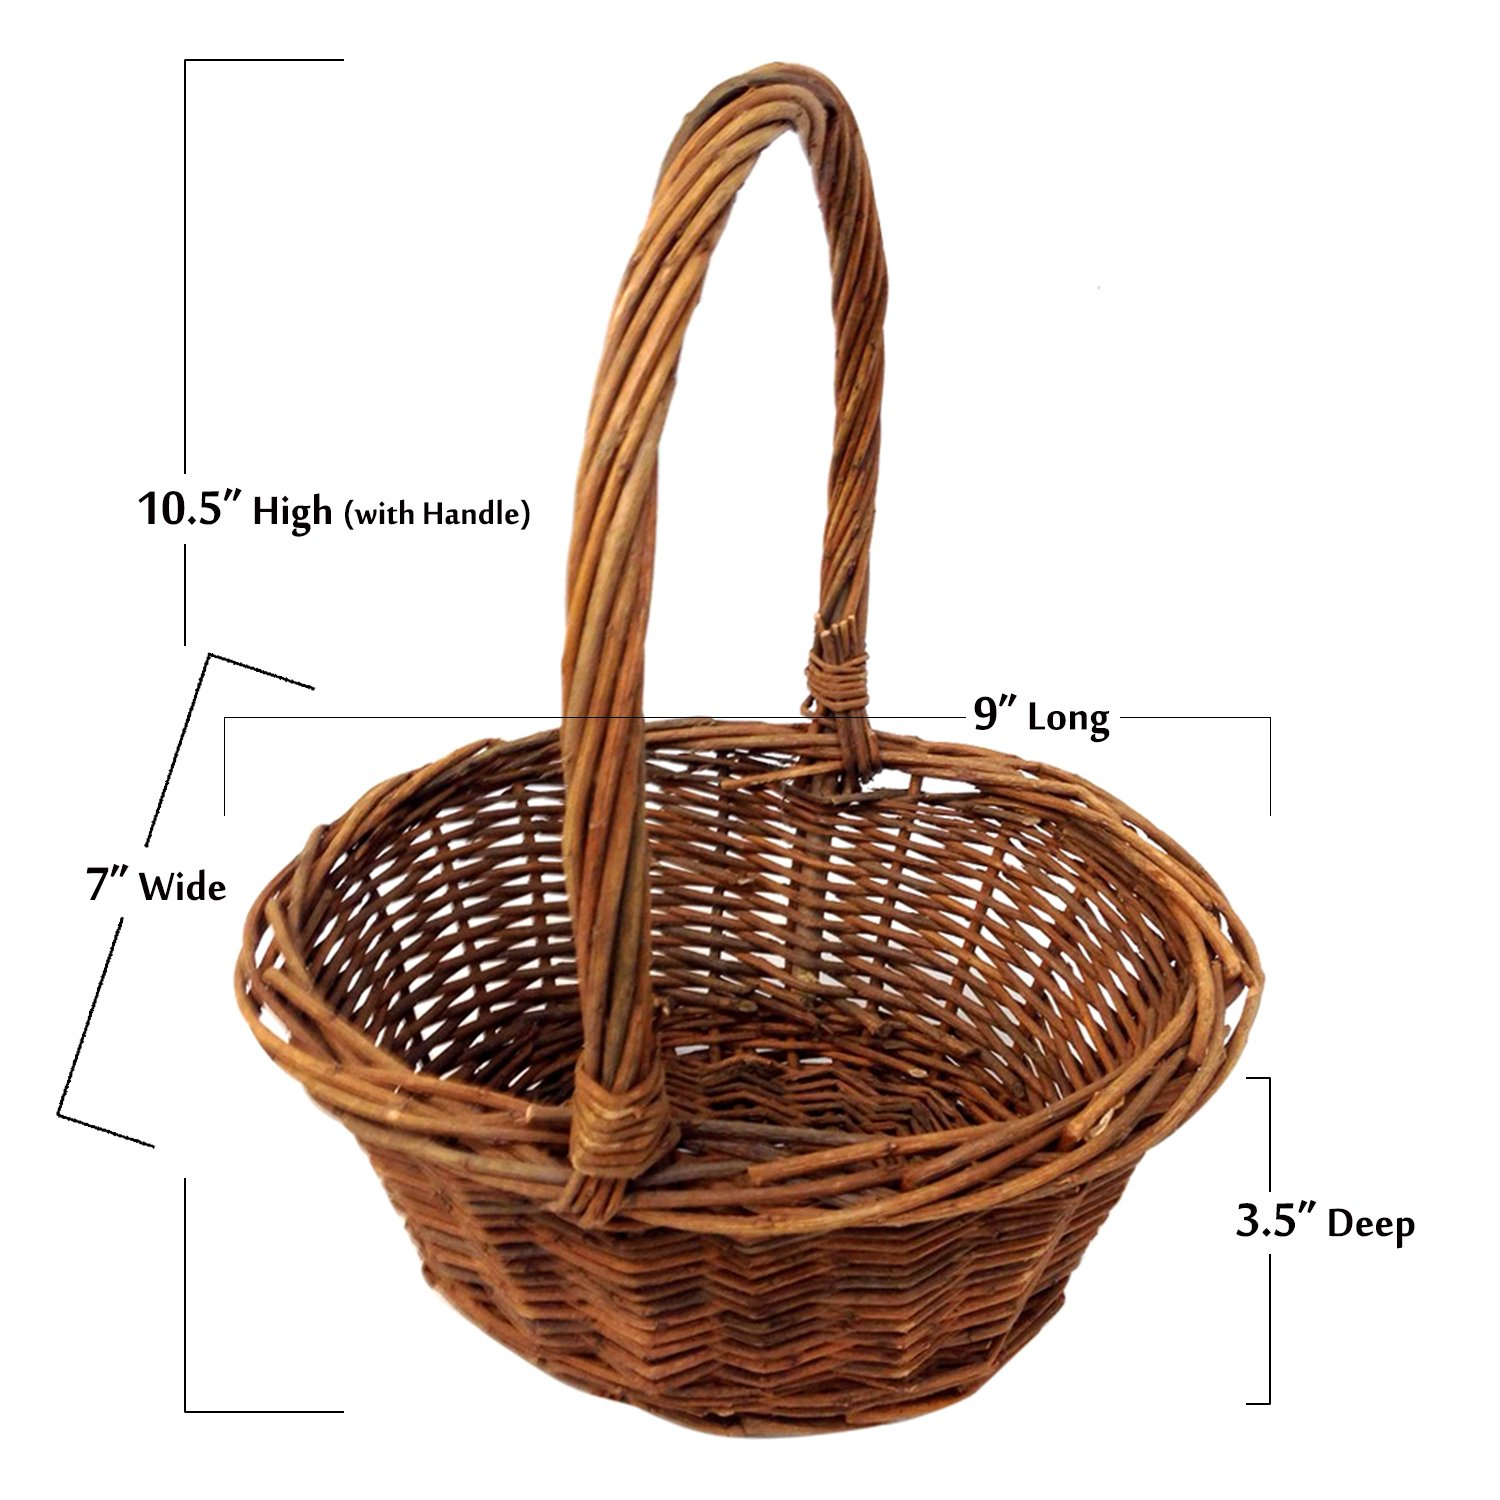 Amazon royal imports oval shaped small willow handwoven amazon royal imports oval shaped small willow handwoven easter basket 9l x7w x35h 105h w handle braided rim with plastic insert izmirmasajfo